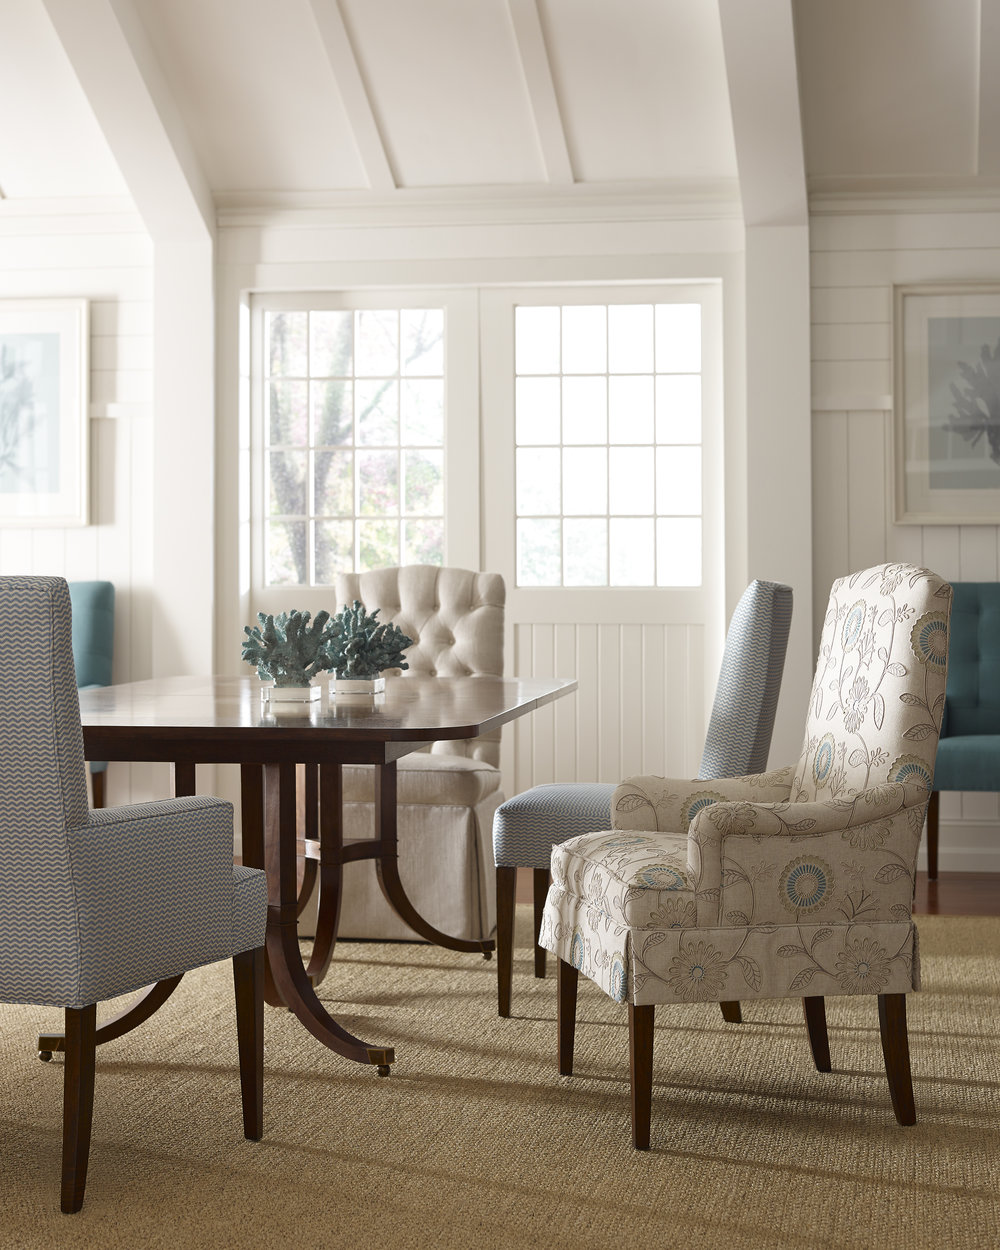 Dining Room Chairs Interior Design.jpg